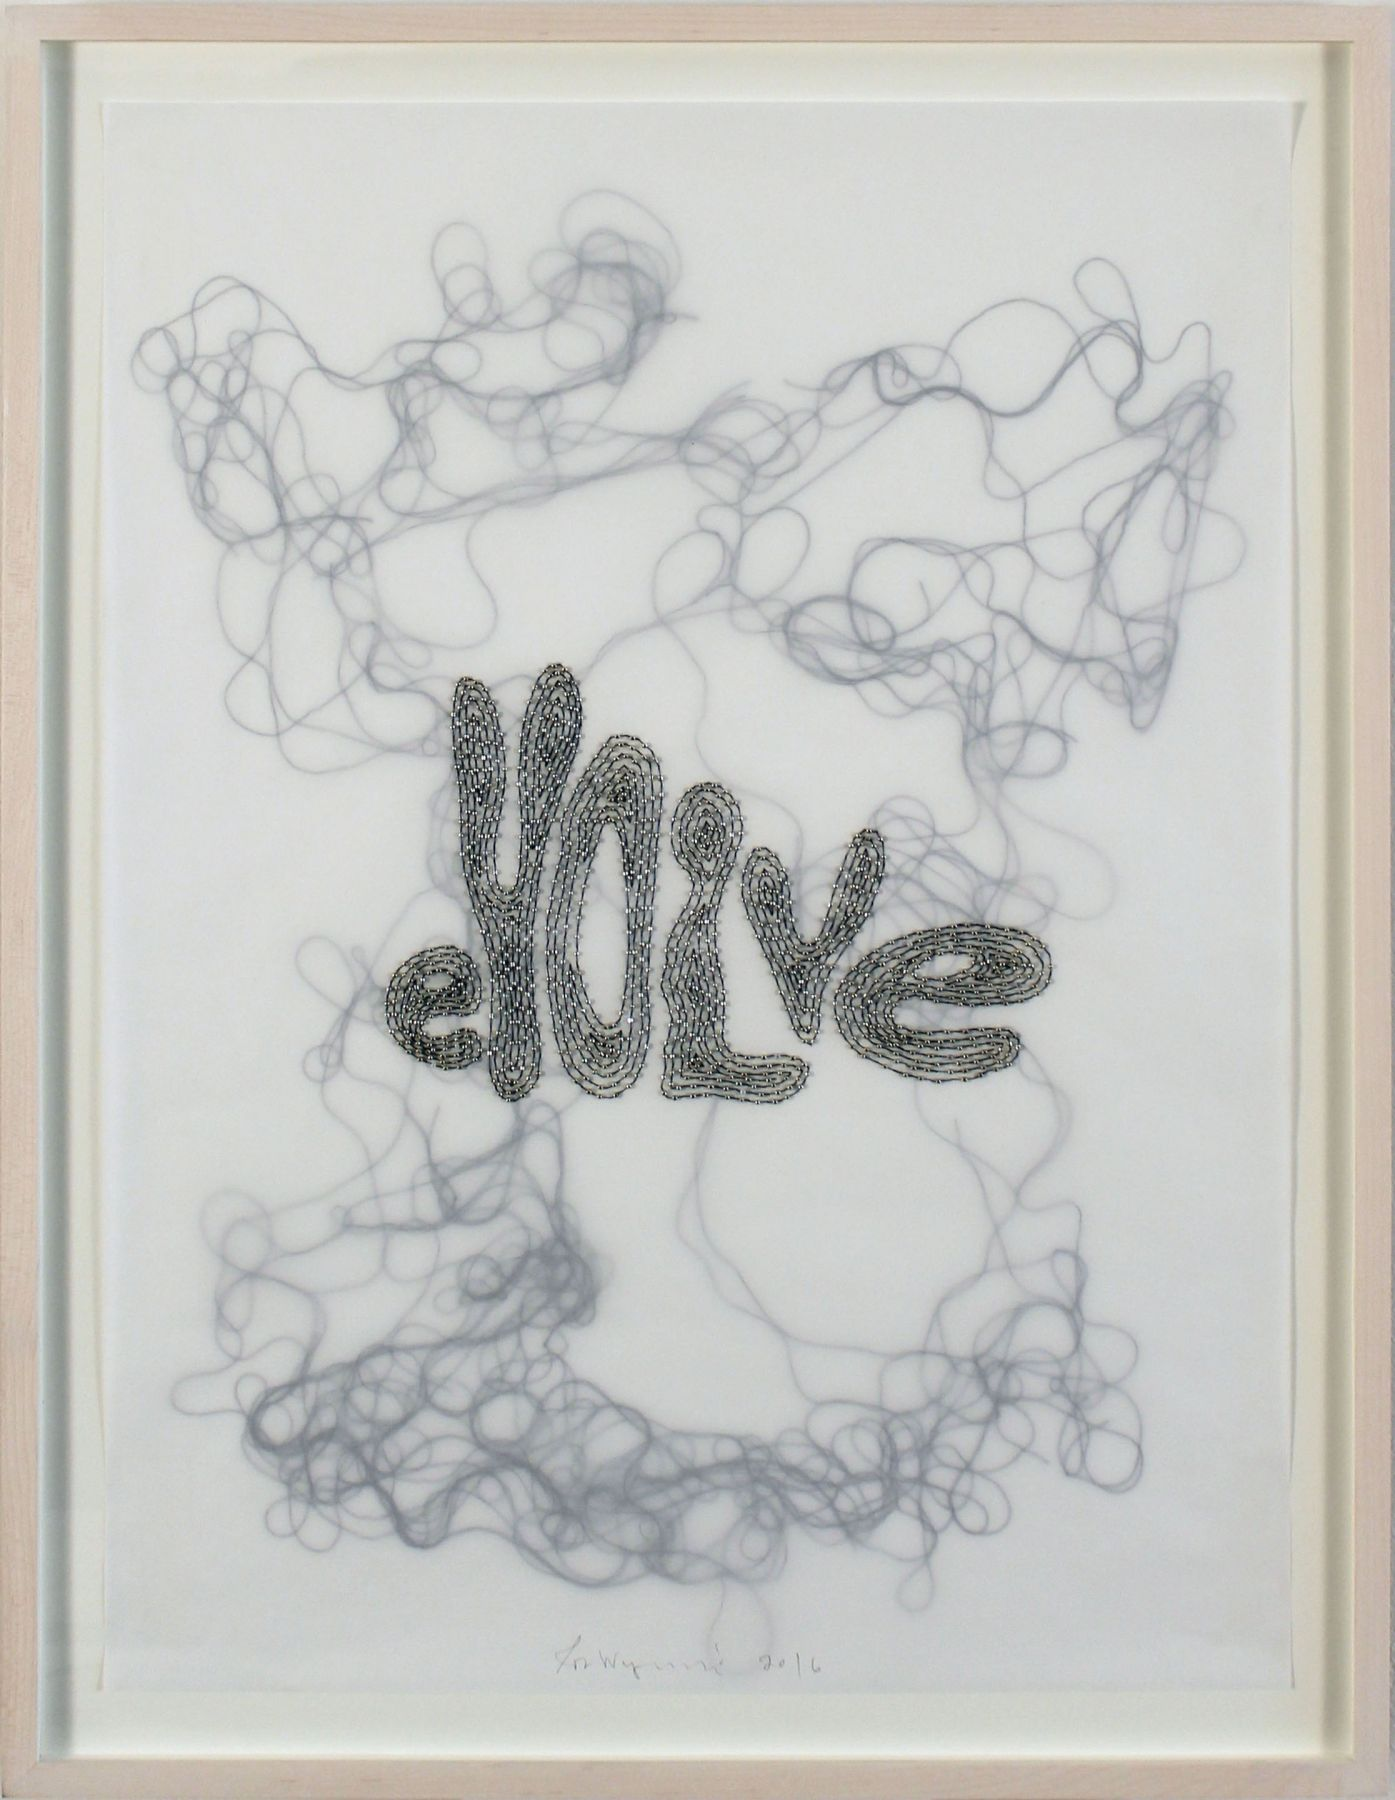 Evolve, 2016, Glass beads and thread on vellum